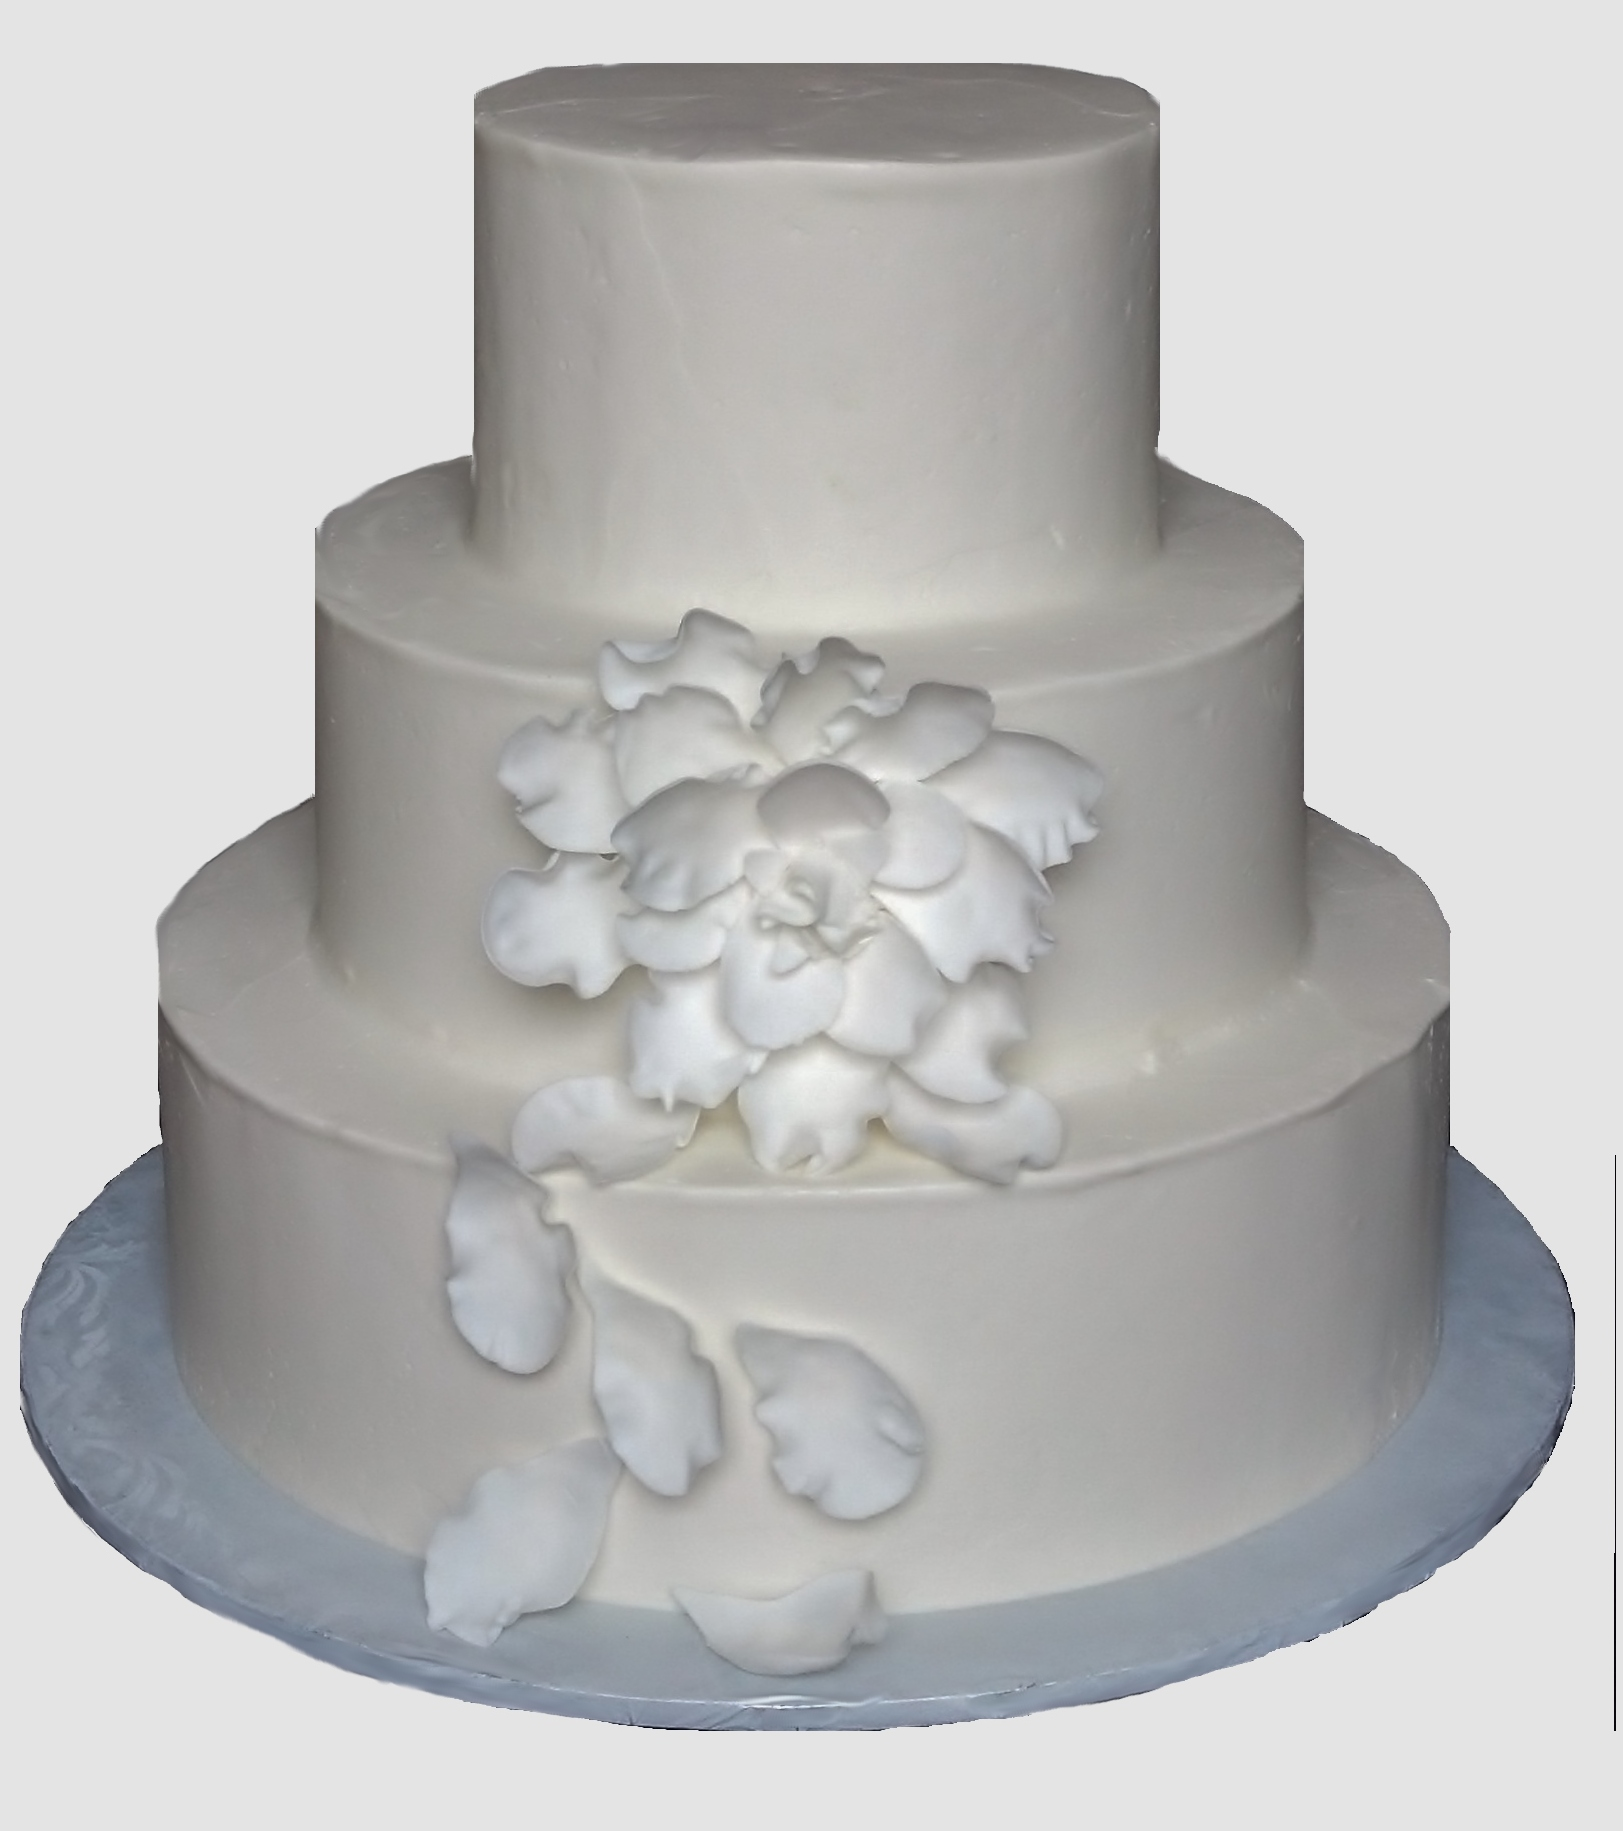 Custom Cakes, Wedding Cakes & Desserts!